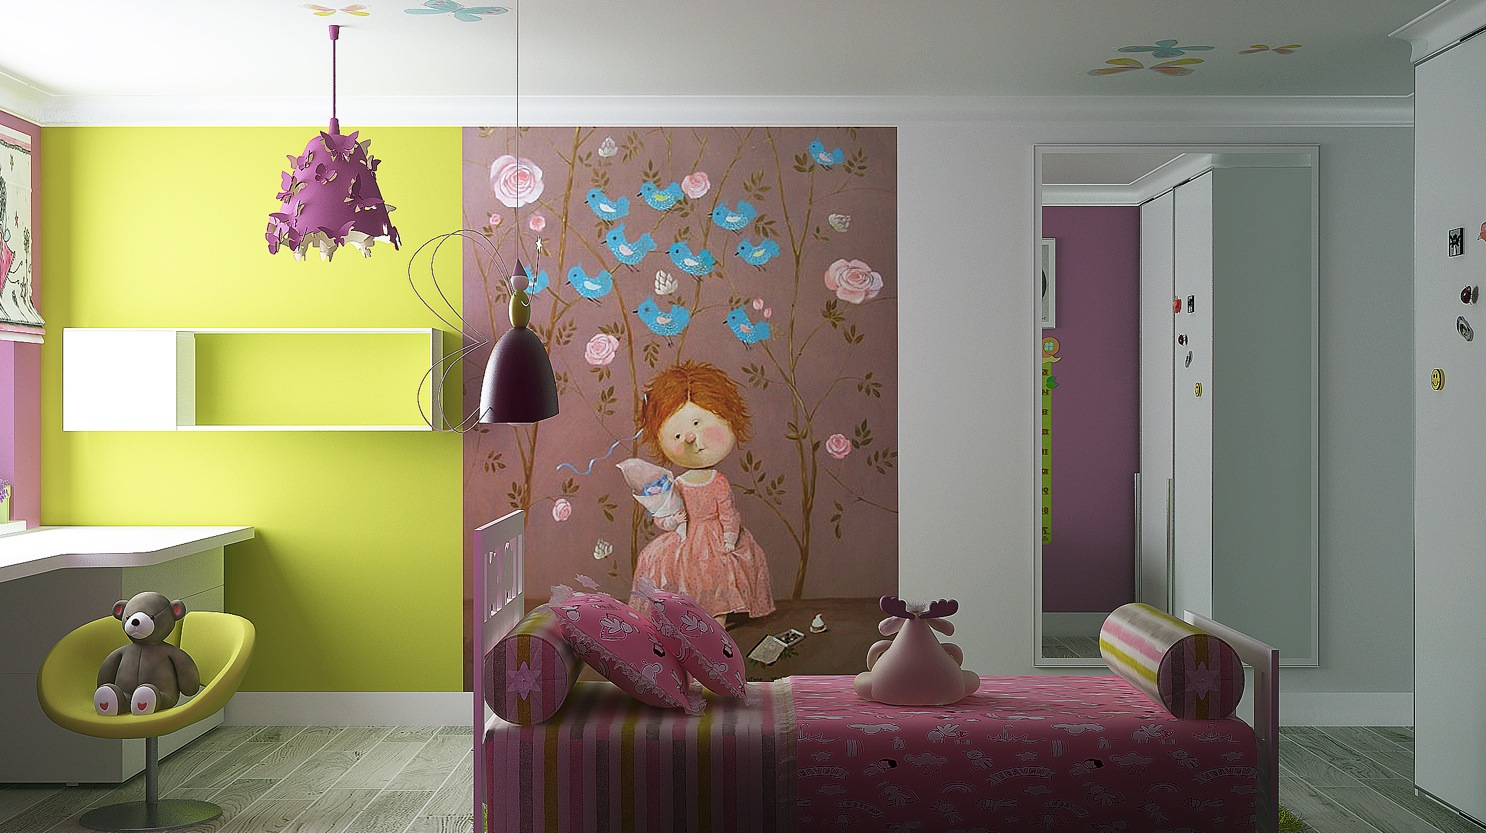 Bedroom colors for girls room - Surprising Wall Mural To Decorate Bedroom For Girls With Unique Pendant Lamps